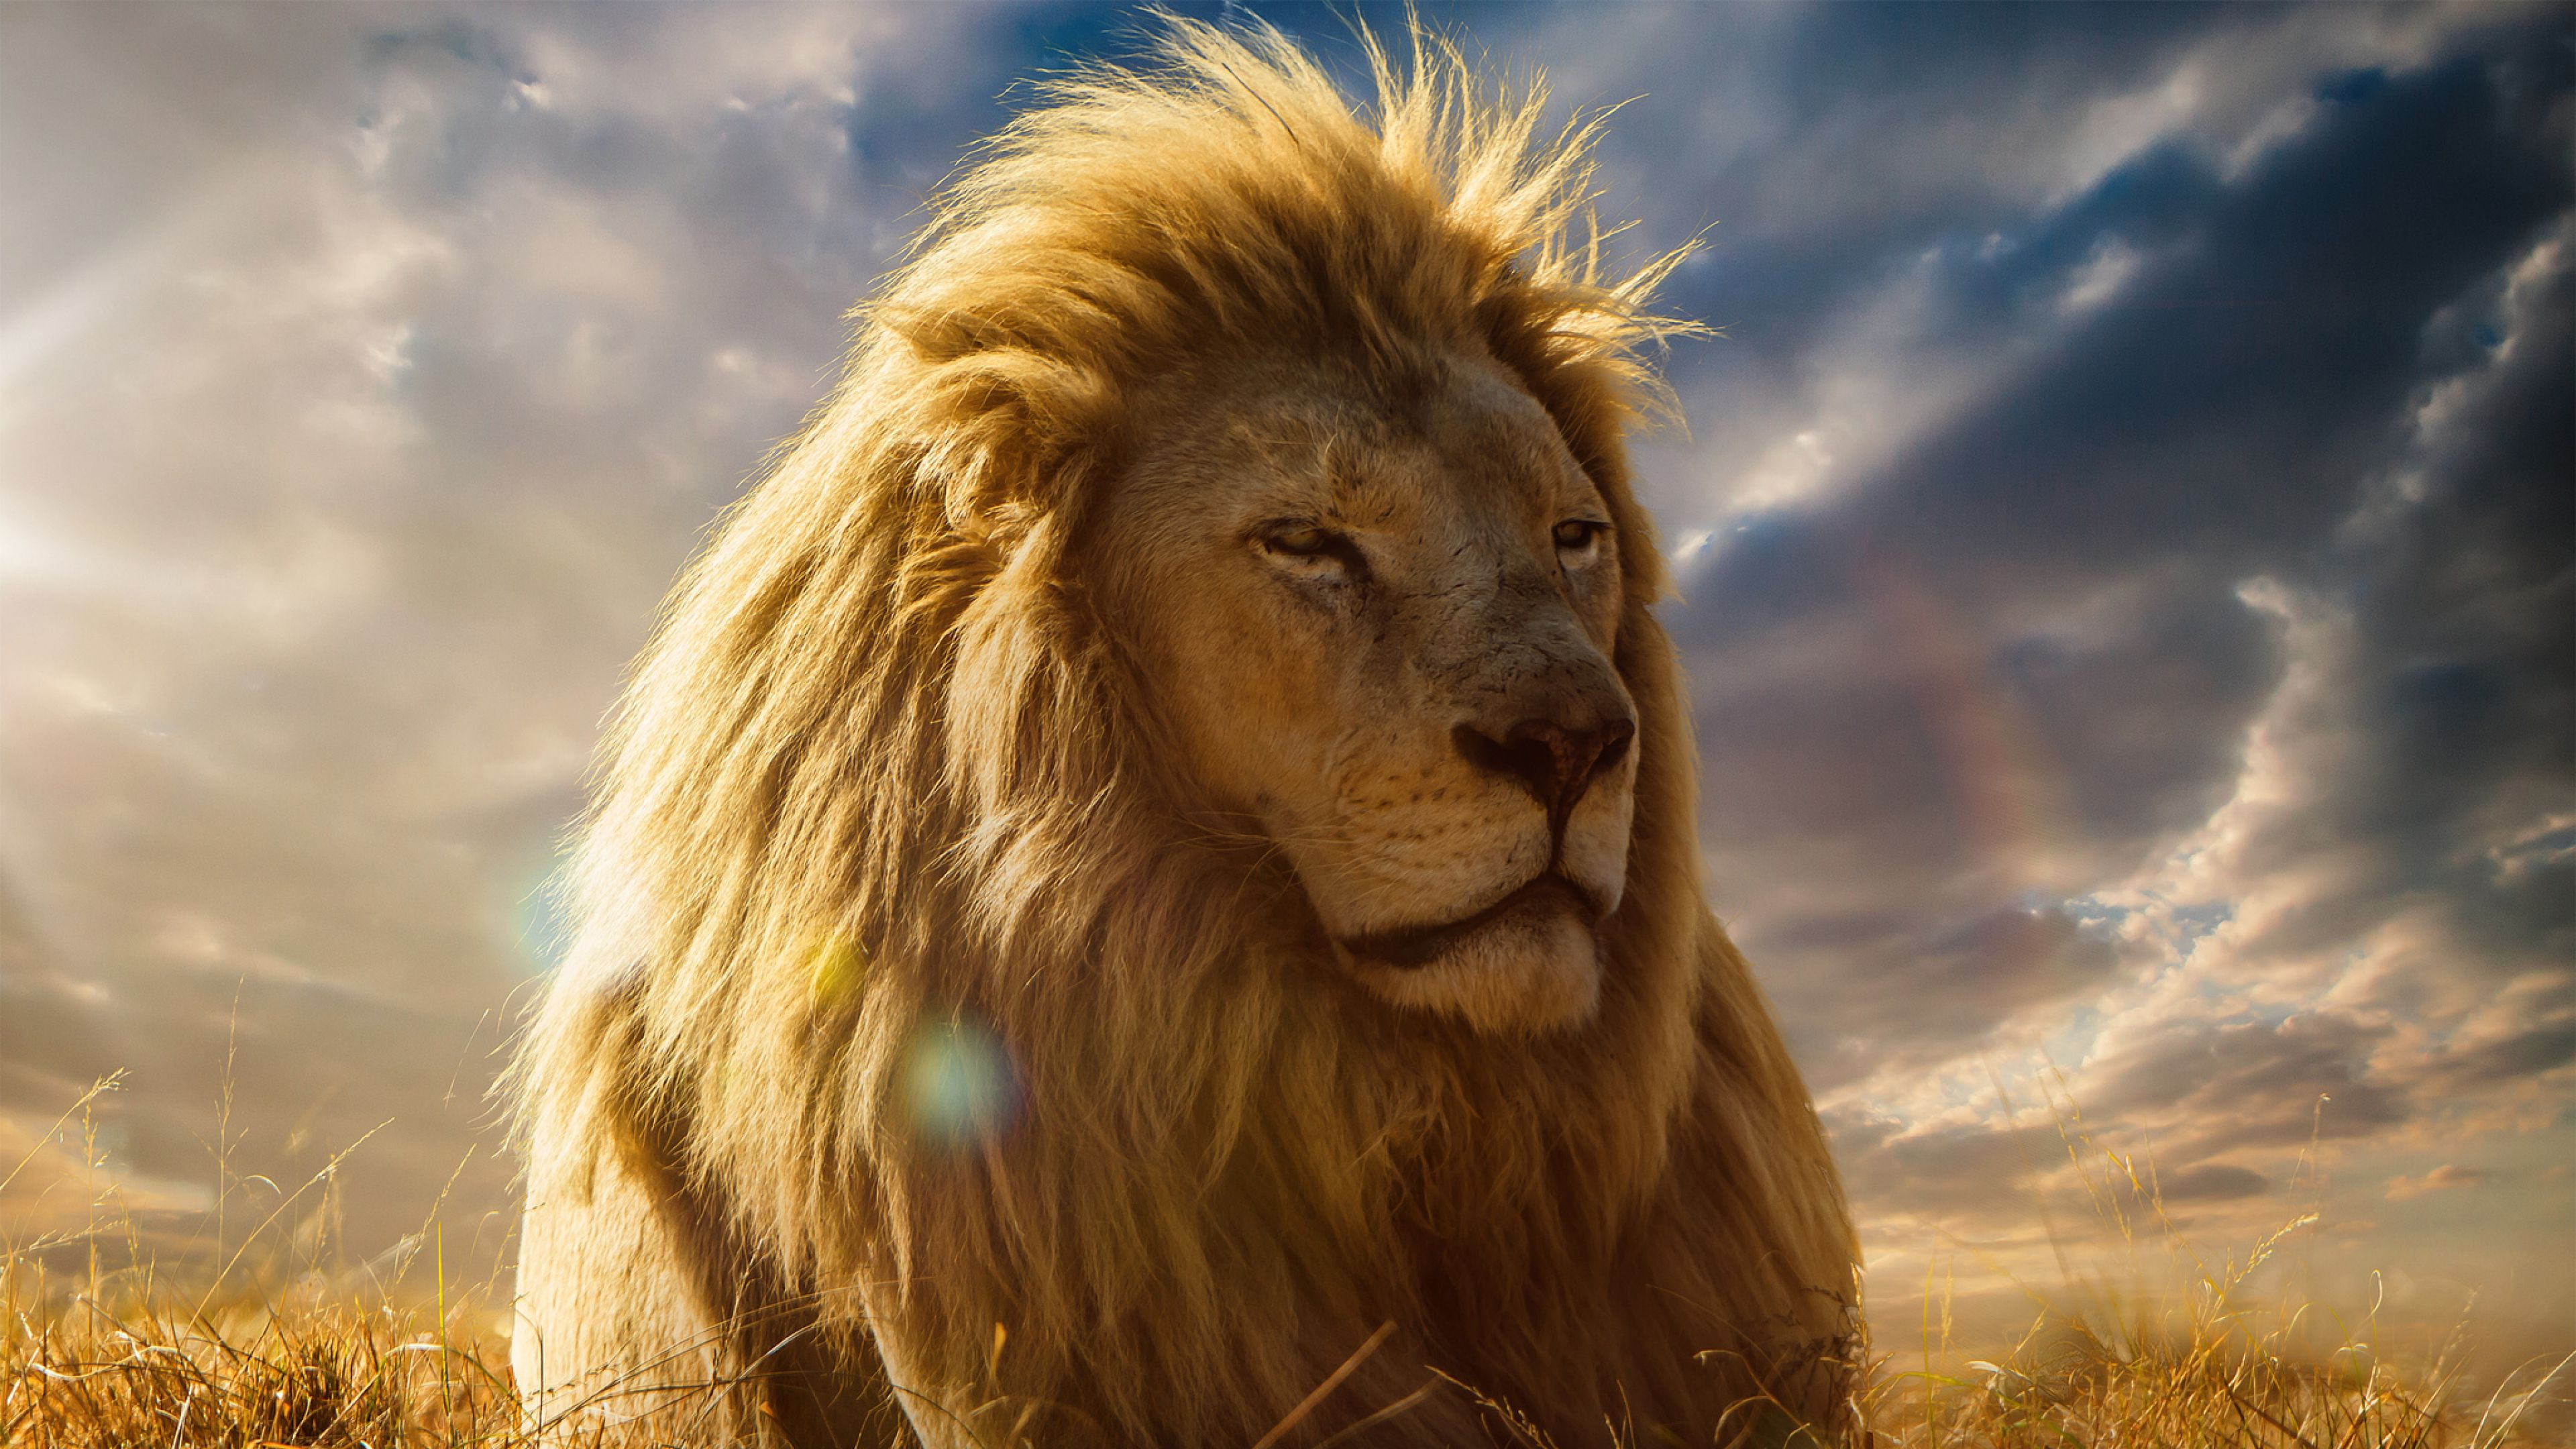 Lion king 4k we hope you like lion king 4k wallpaper and if you